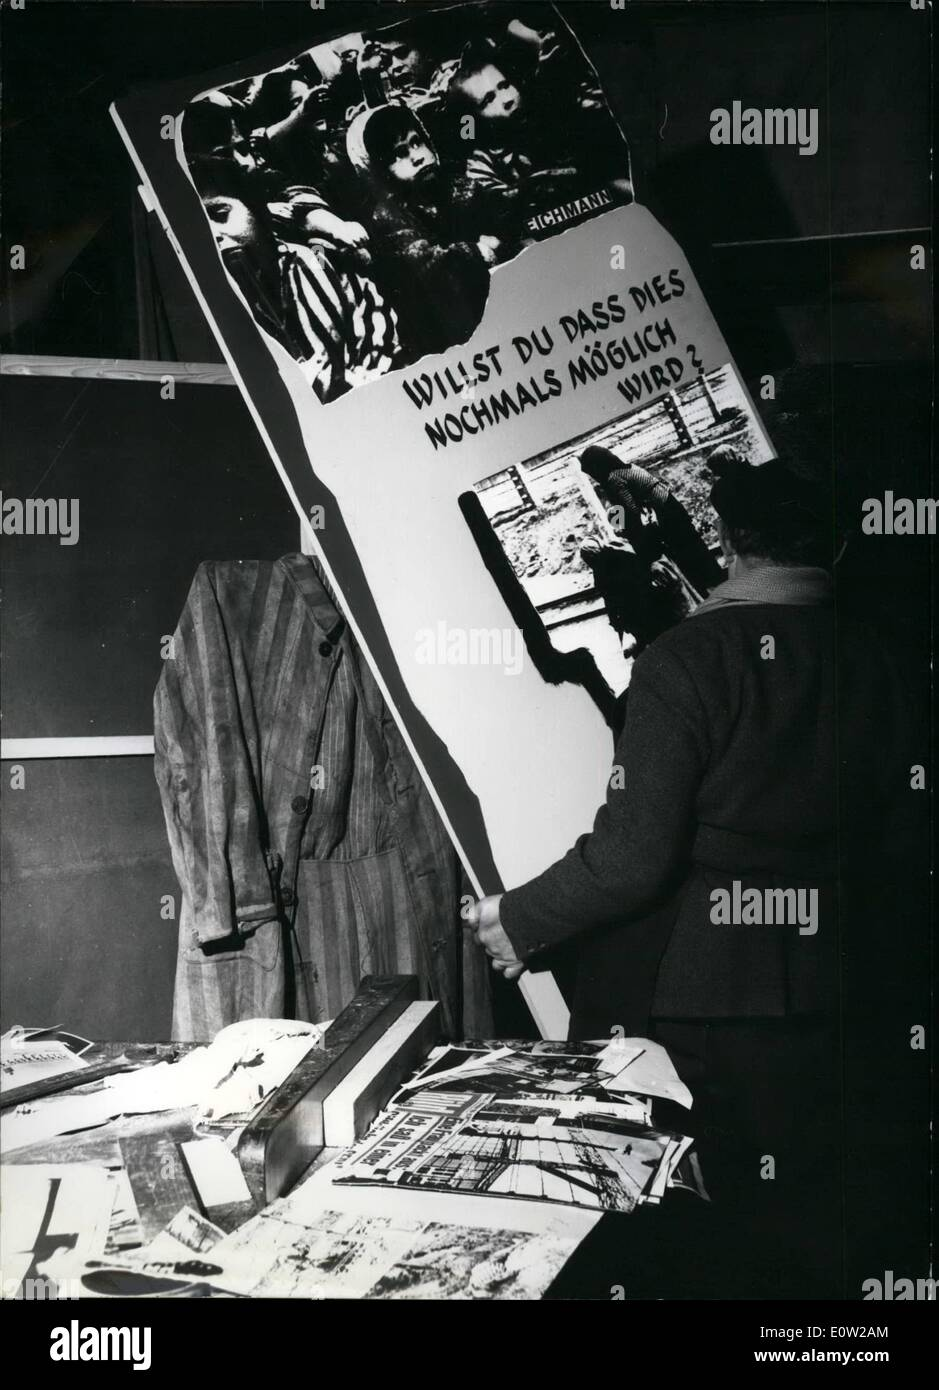 Feb. 02, 1961 - Eichmann exhibition in Munich: On Feb. 18th, in Munich Burgerbraukeller (where on Nov. 9th, 1939 the simulated assault on Hitler took place), an exhibition will be opened under the title ''Massacre in the sign of the Swastika''. The exhibition contains several hundred documents, pictures and historical indications about the pursuit of Jews under Hitler and the others responsible for it. The exhibition is of special interest as in March the trial will begin in Jerusalem against Adolf Eichmann, the most important man in connection with the pursuit of Jews - Stock Image